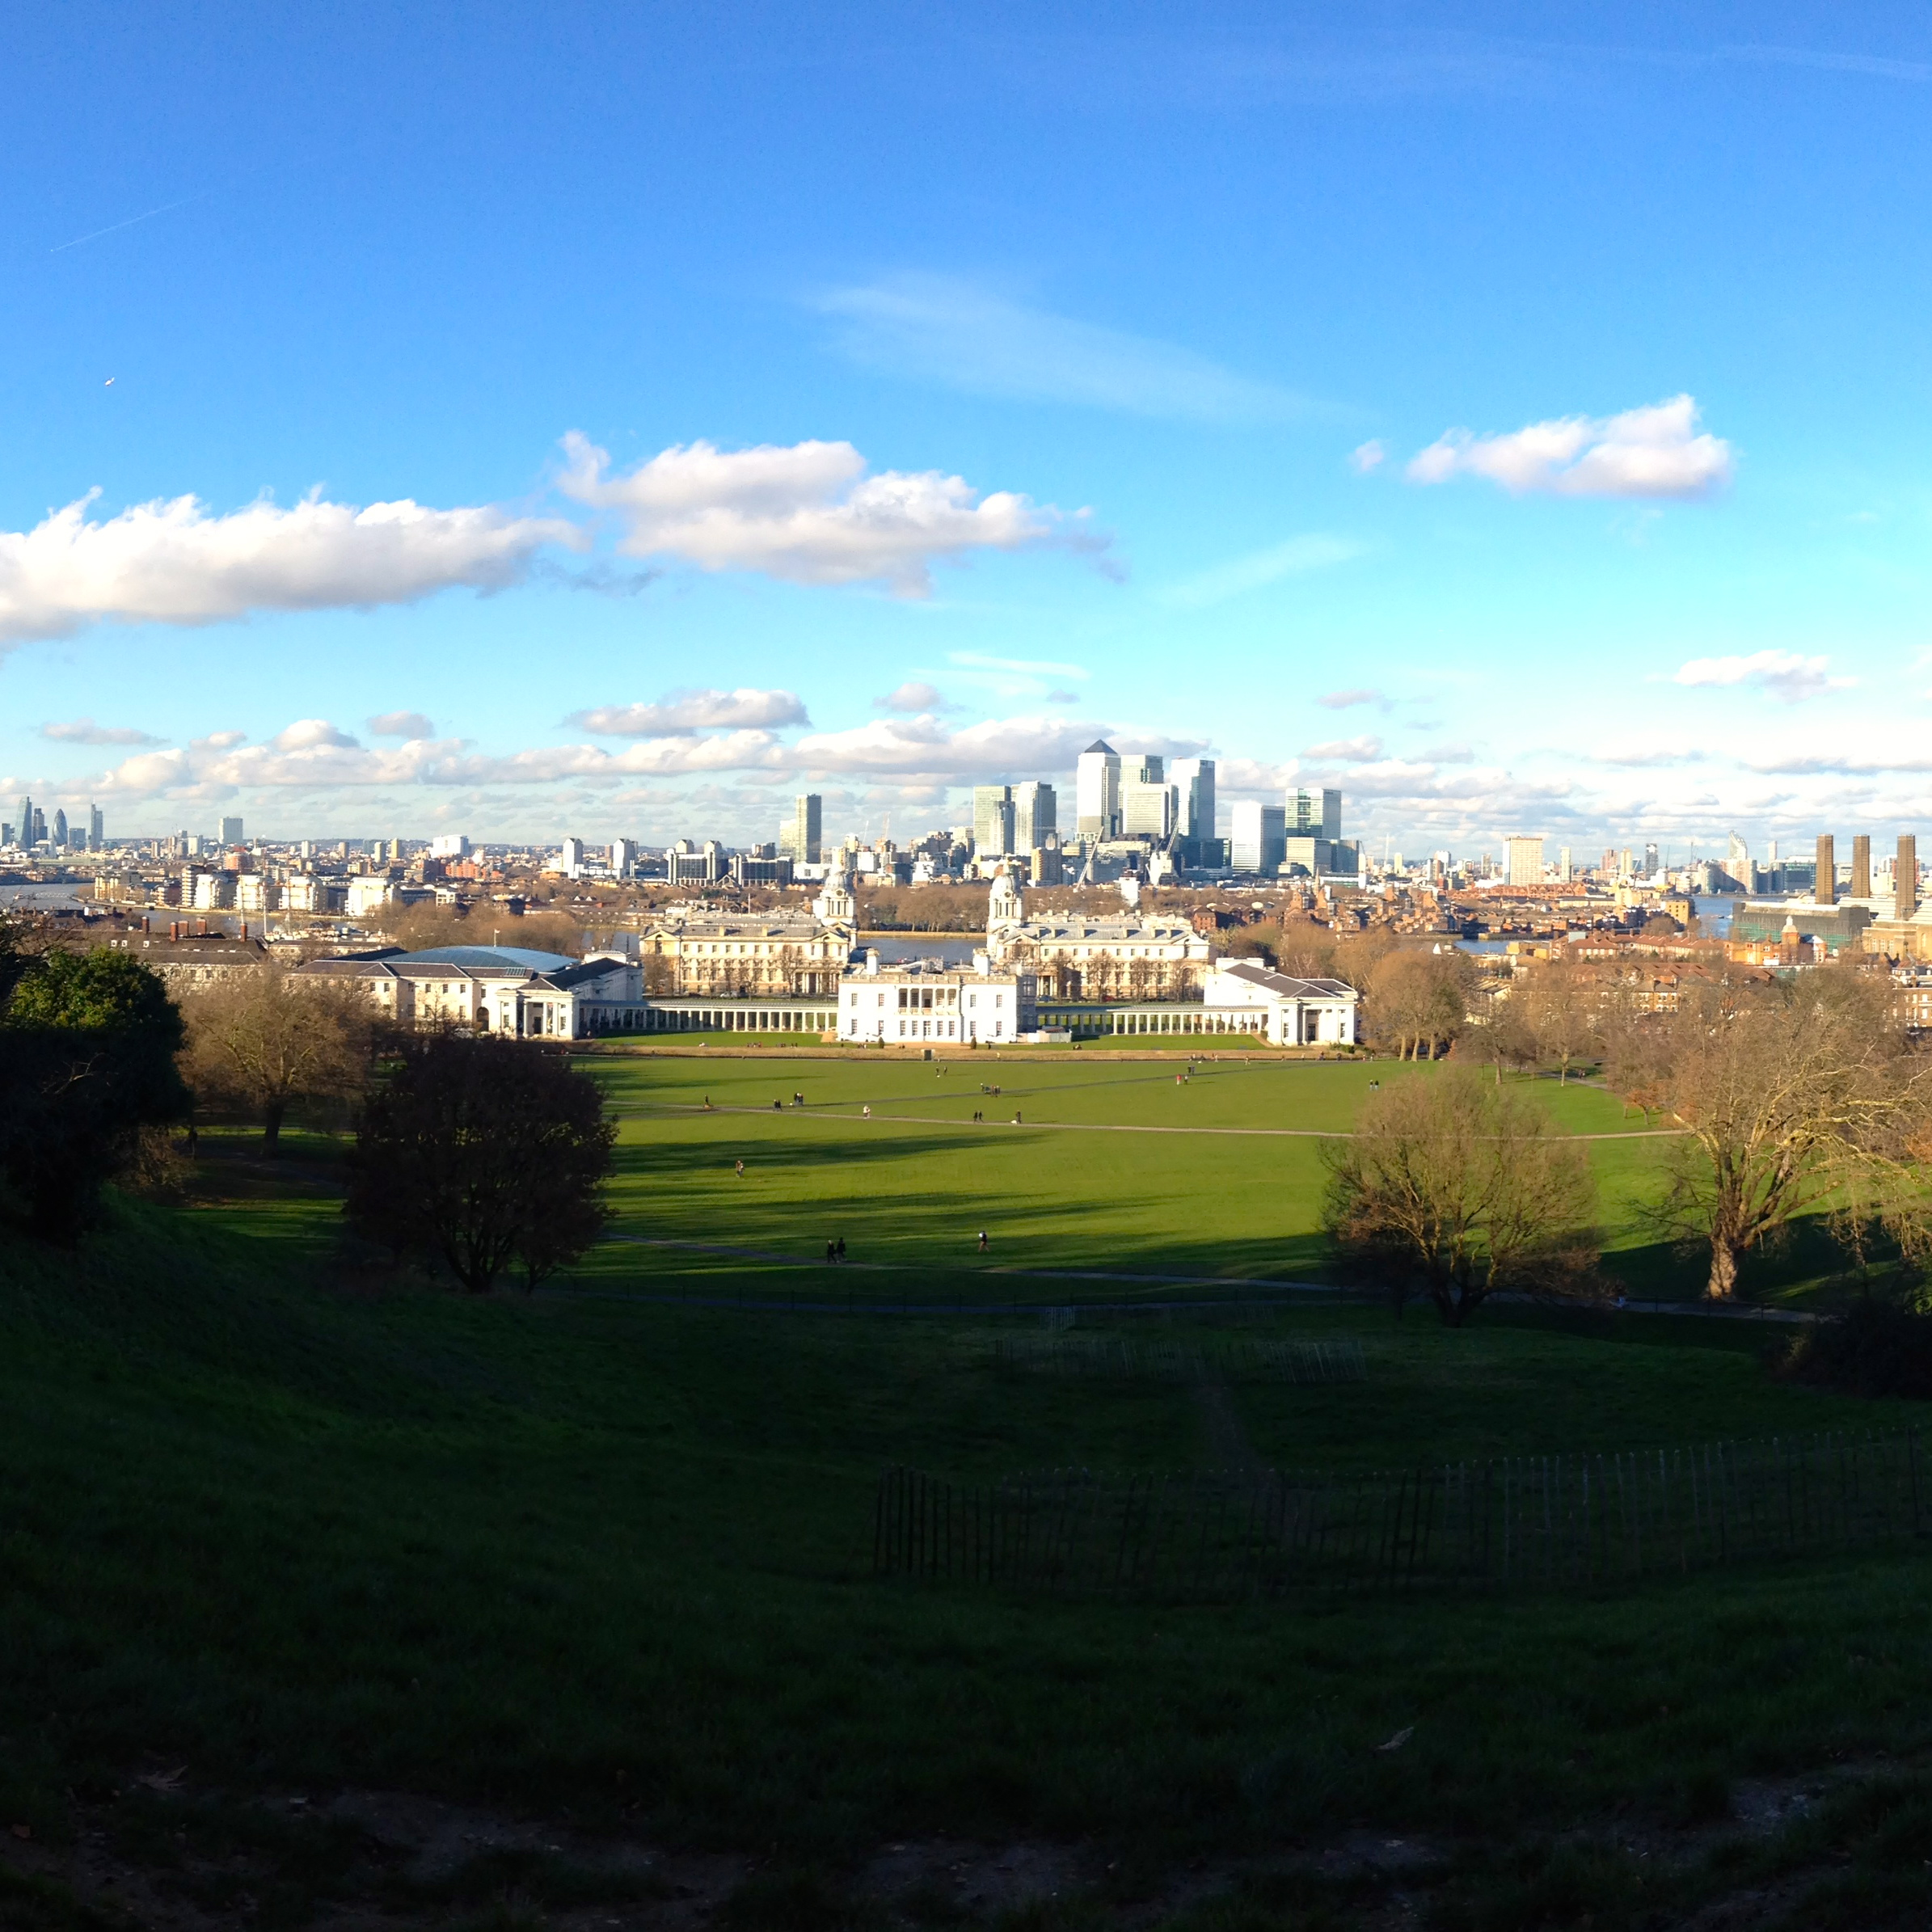 the view from the prime meridian